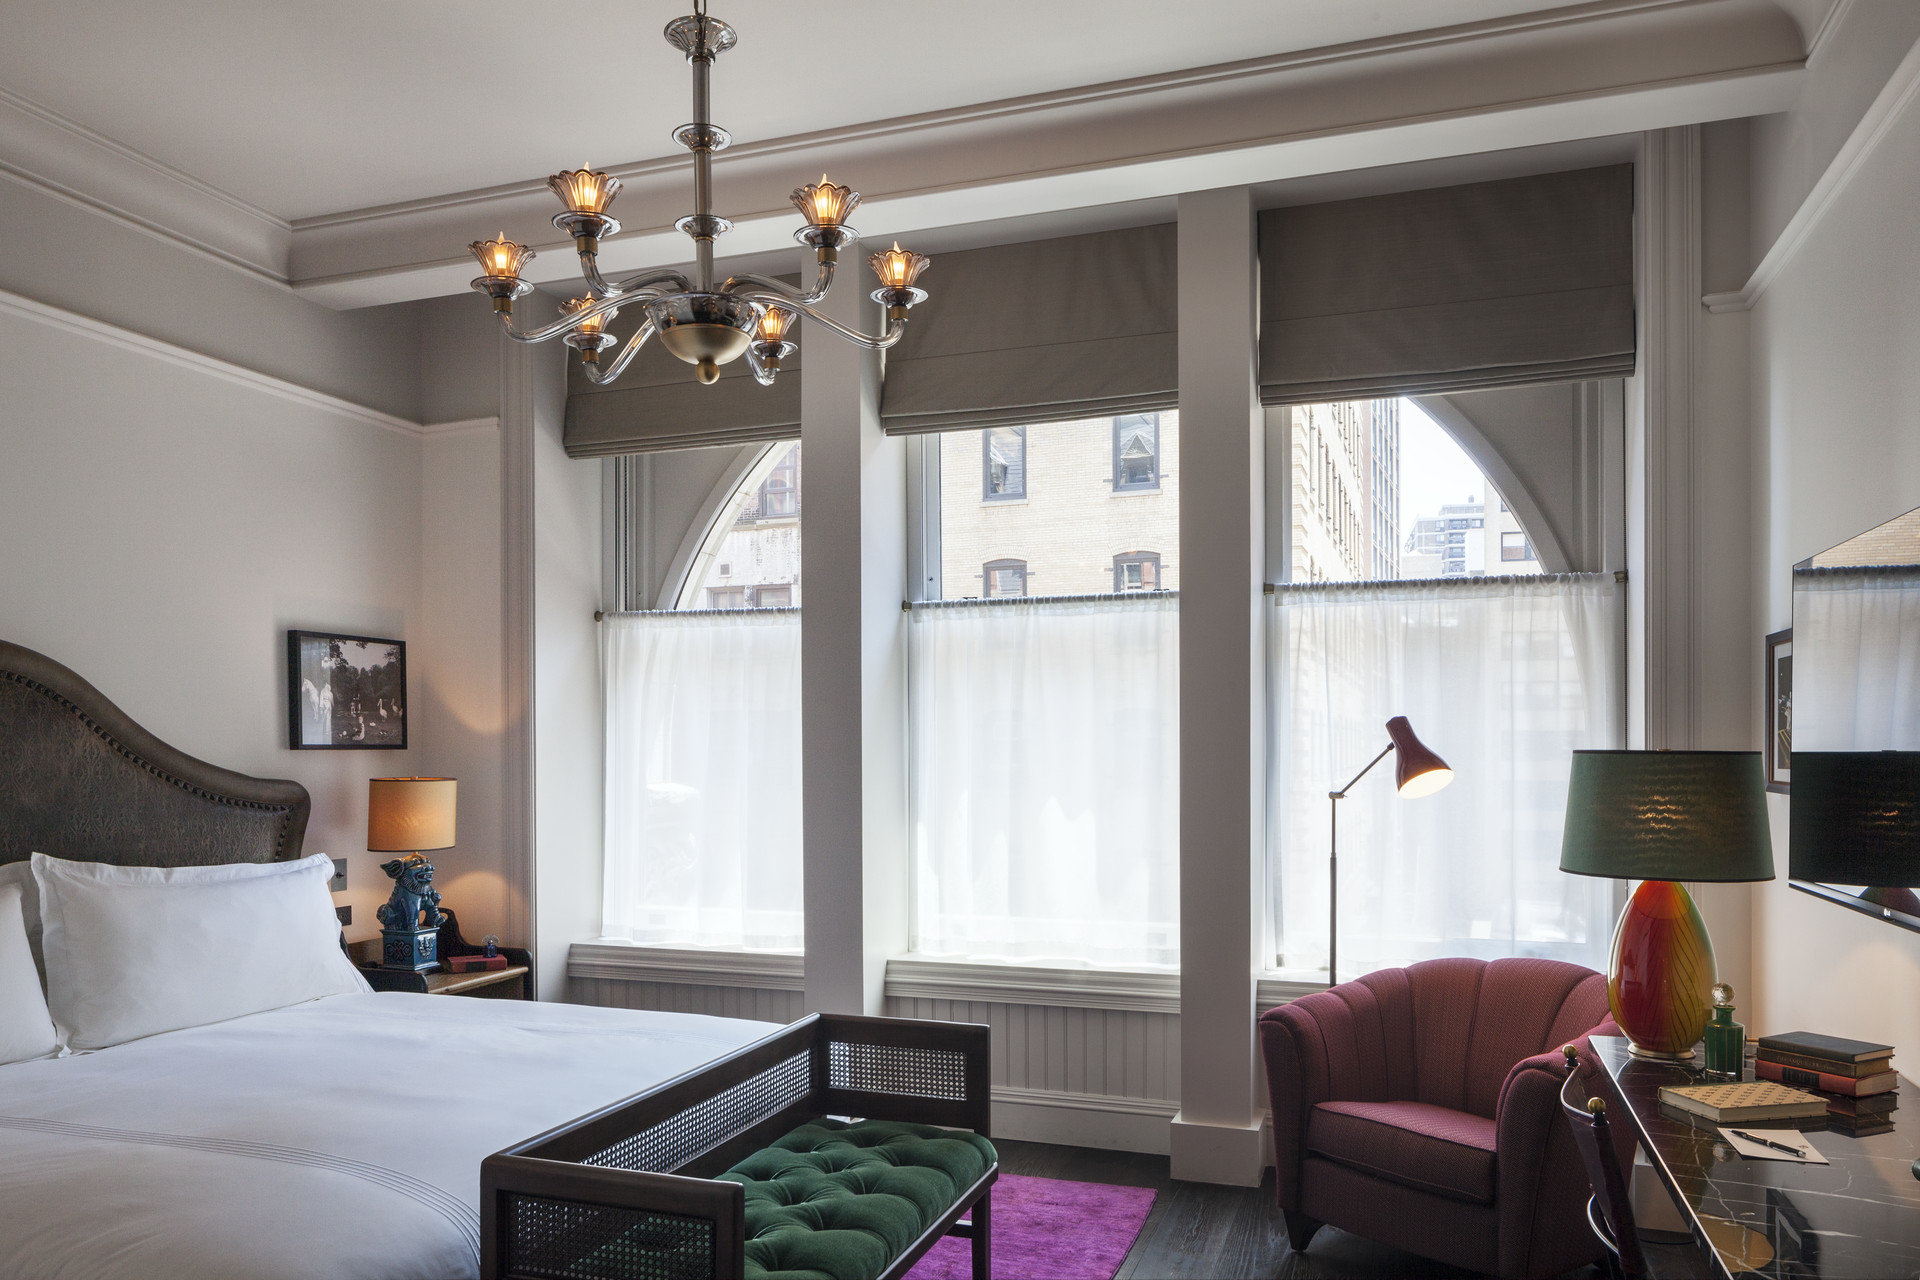 10 Most Romantic Hotels in New York